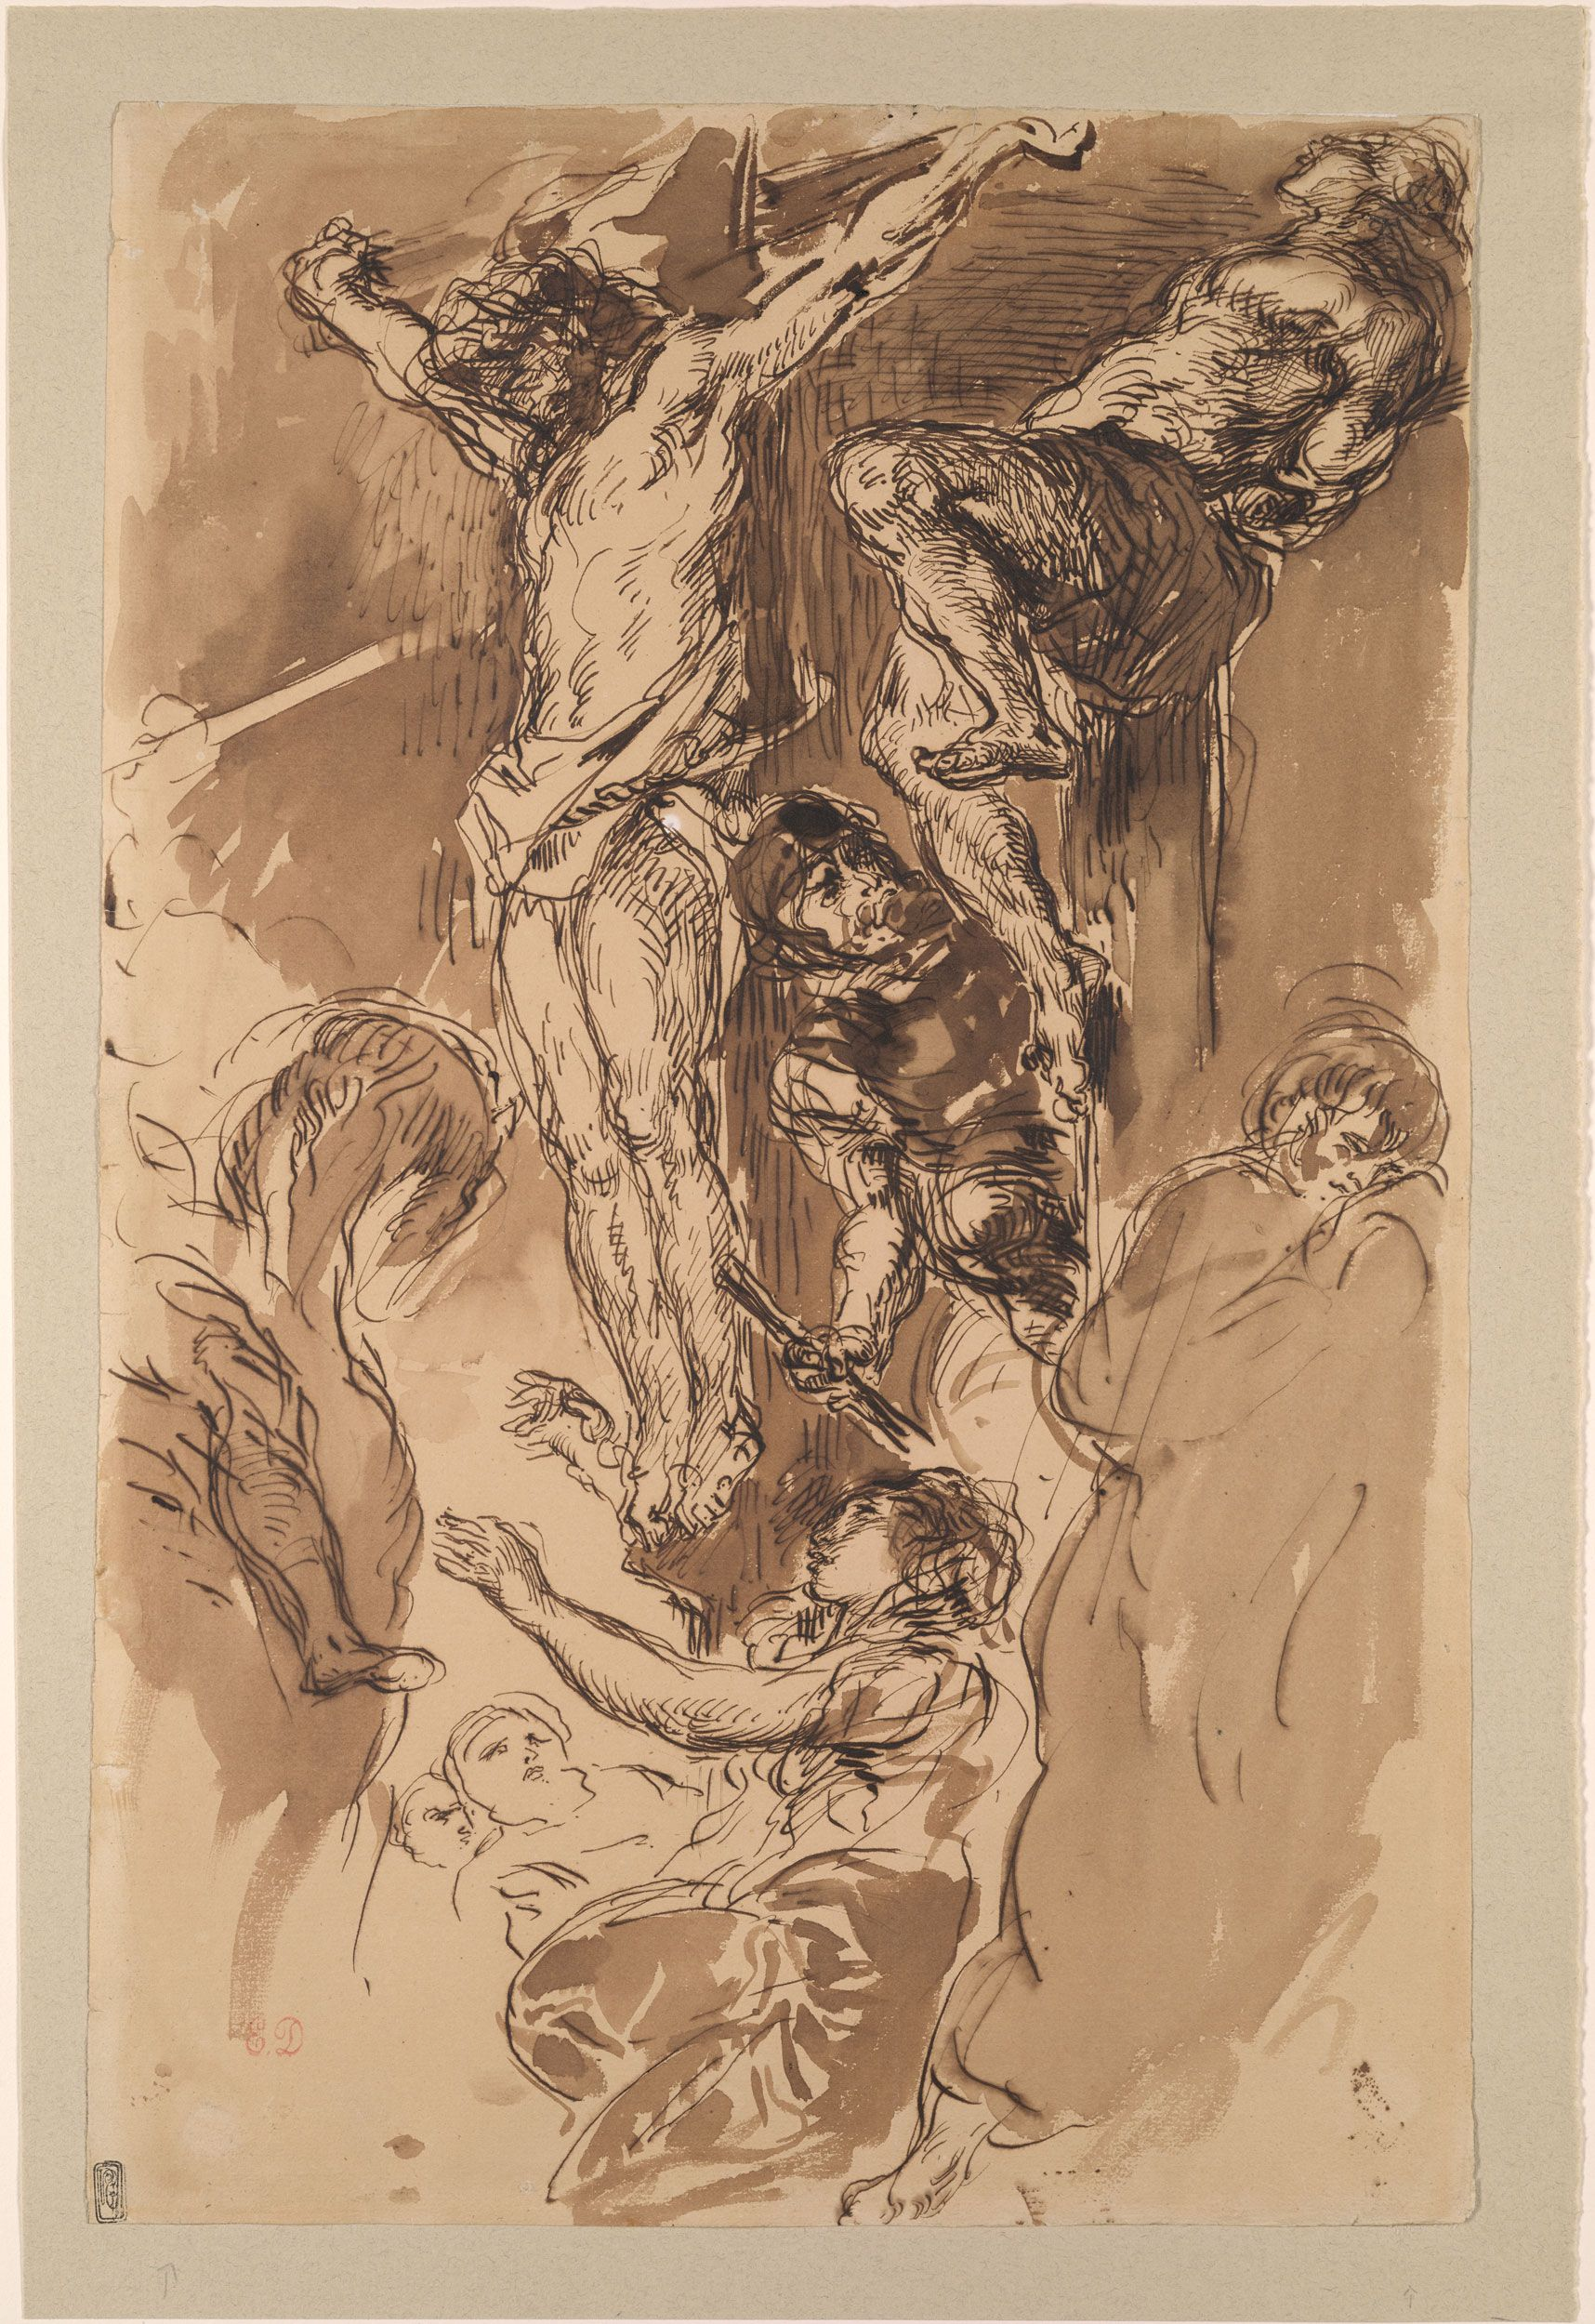 Eugène Delacroix (1798-1863), Christ on the Cross, ca. 1850, Pen and brown ink, brown wash, on paper